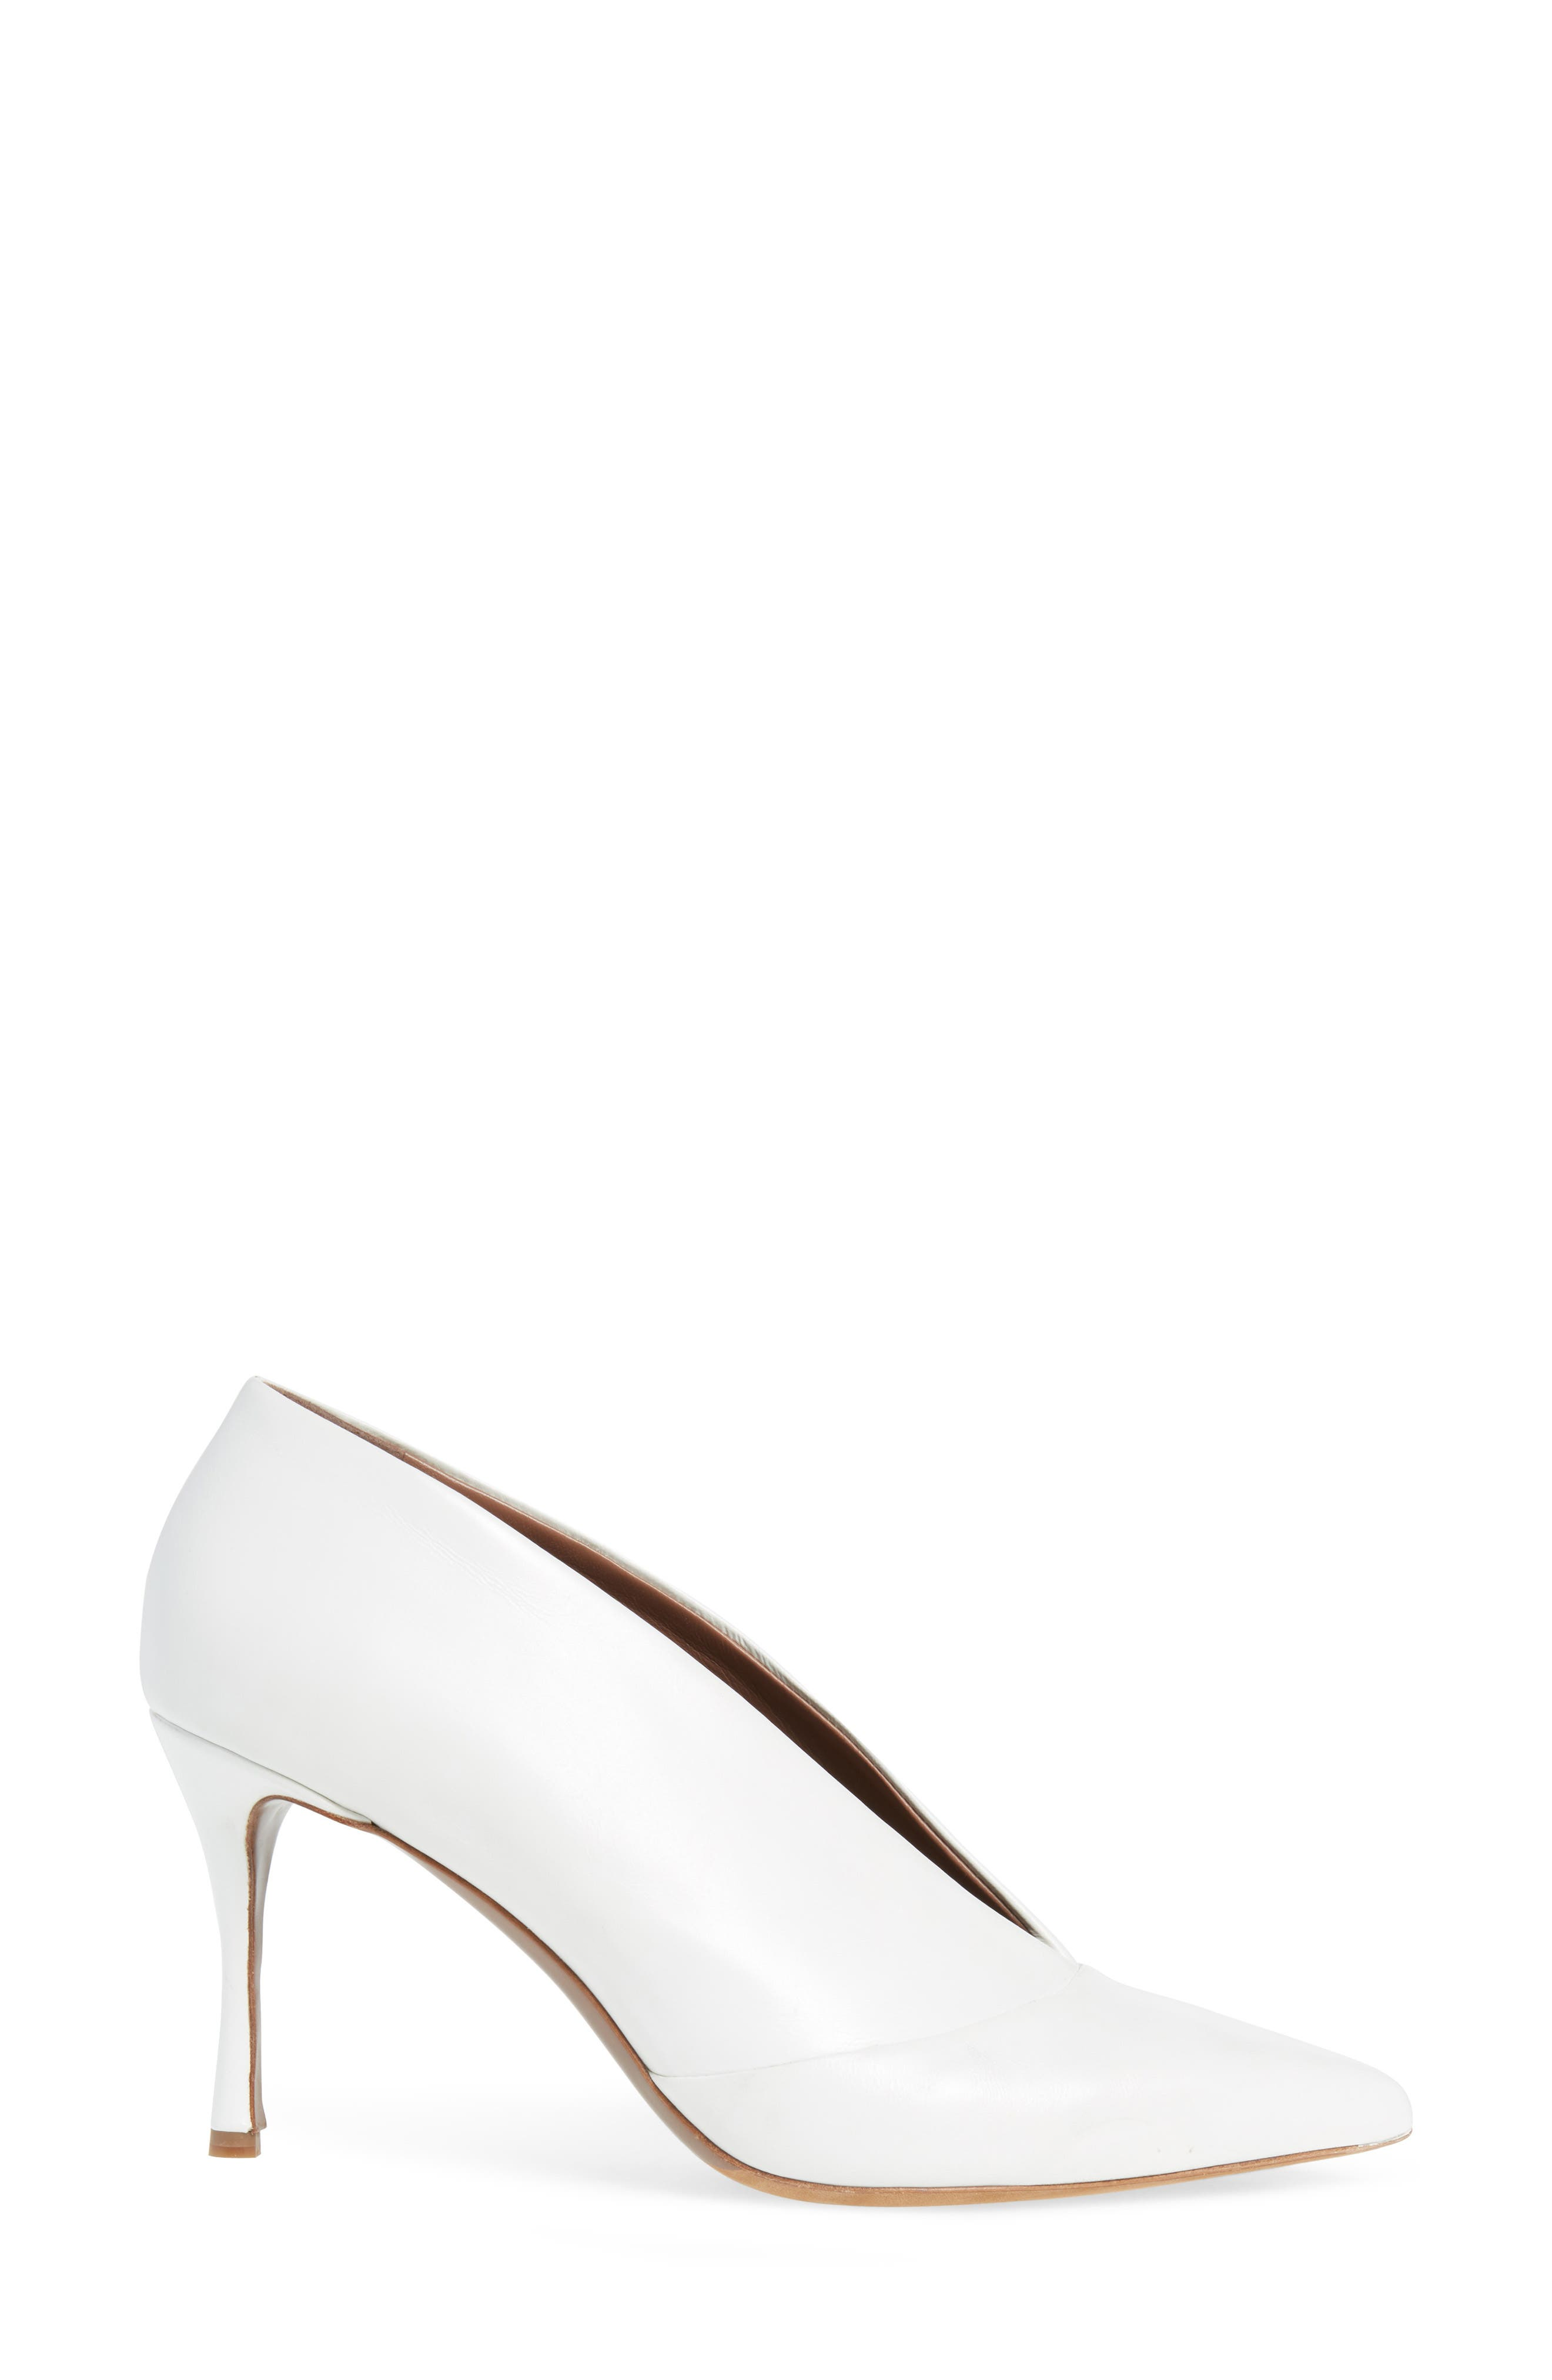 Strike Pointy Toe Pump,                             Alternate thumbnail 3, color,                             100